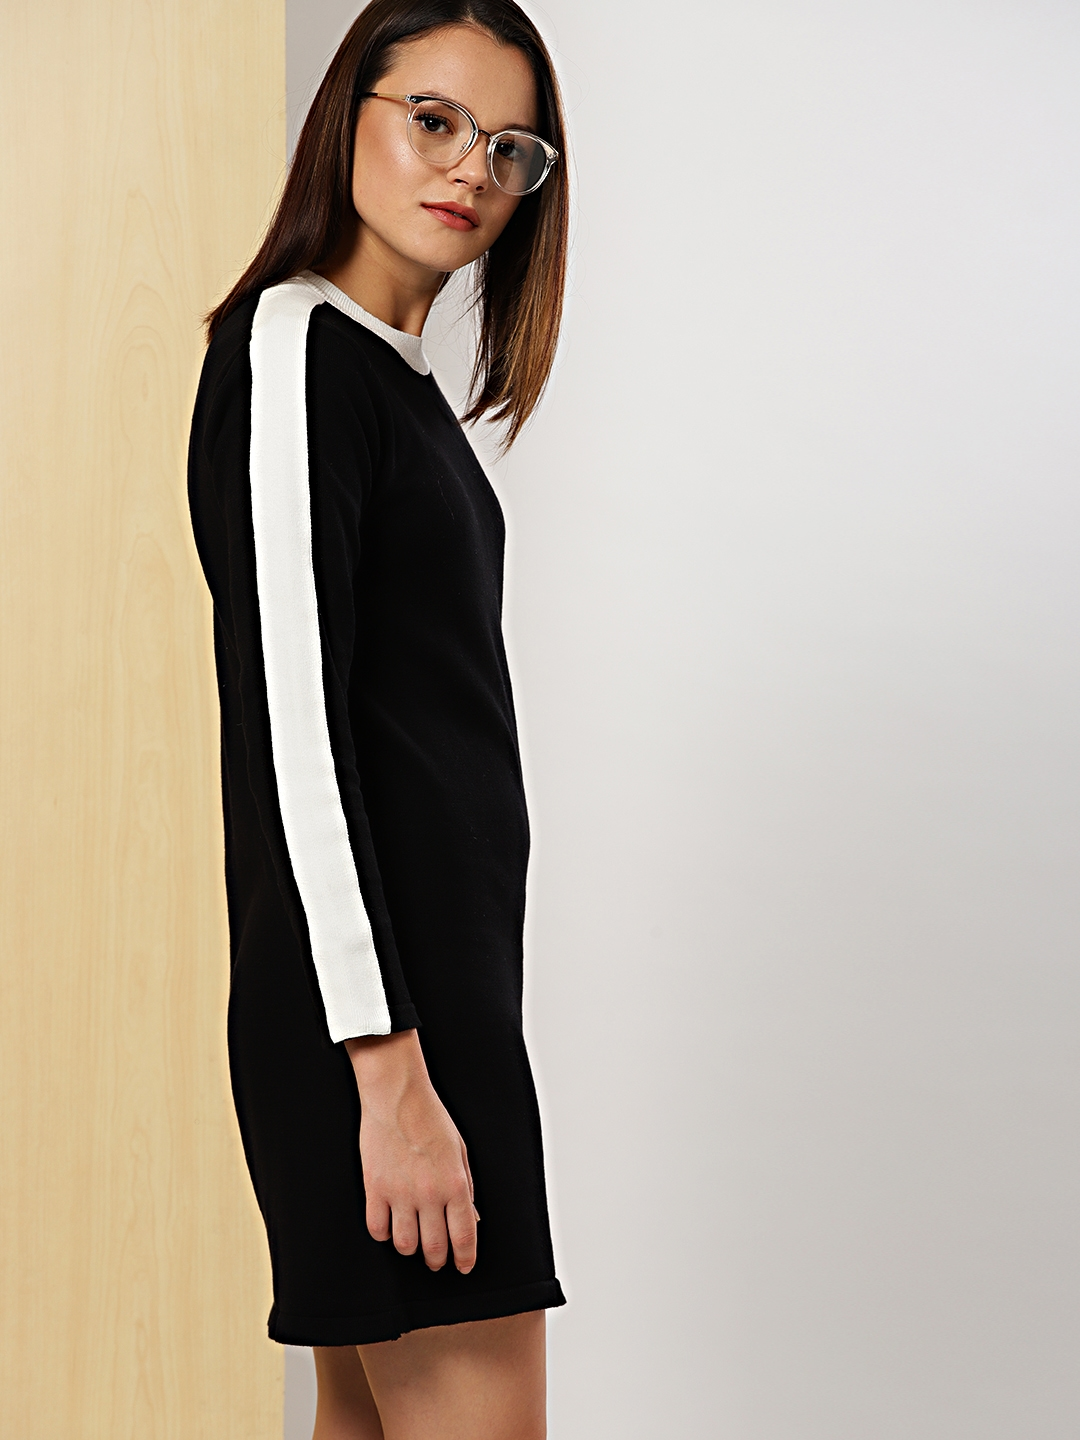 6cc1082db6 Buy Her By Invictus Women Black Solid Sweater Dress - Dresses for ...